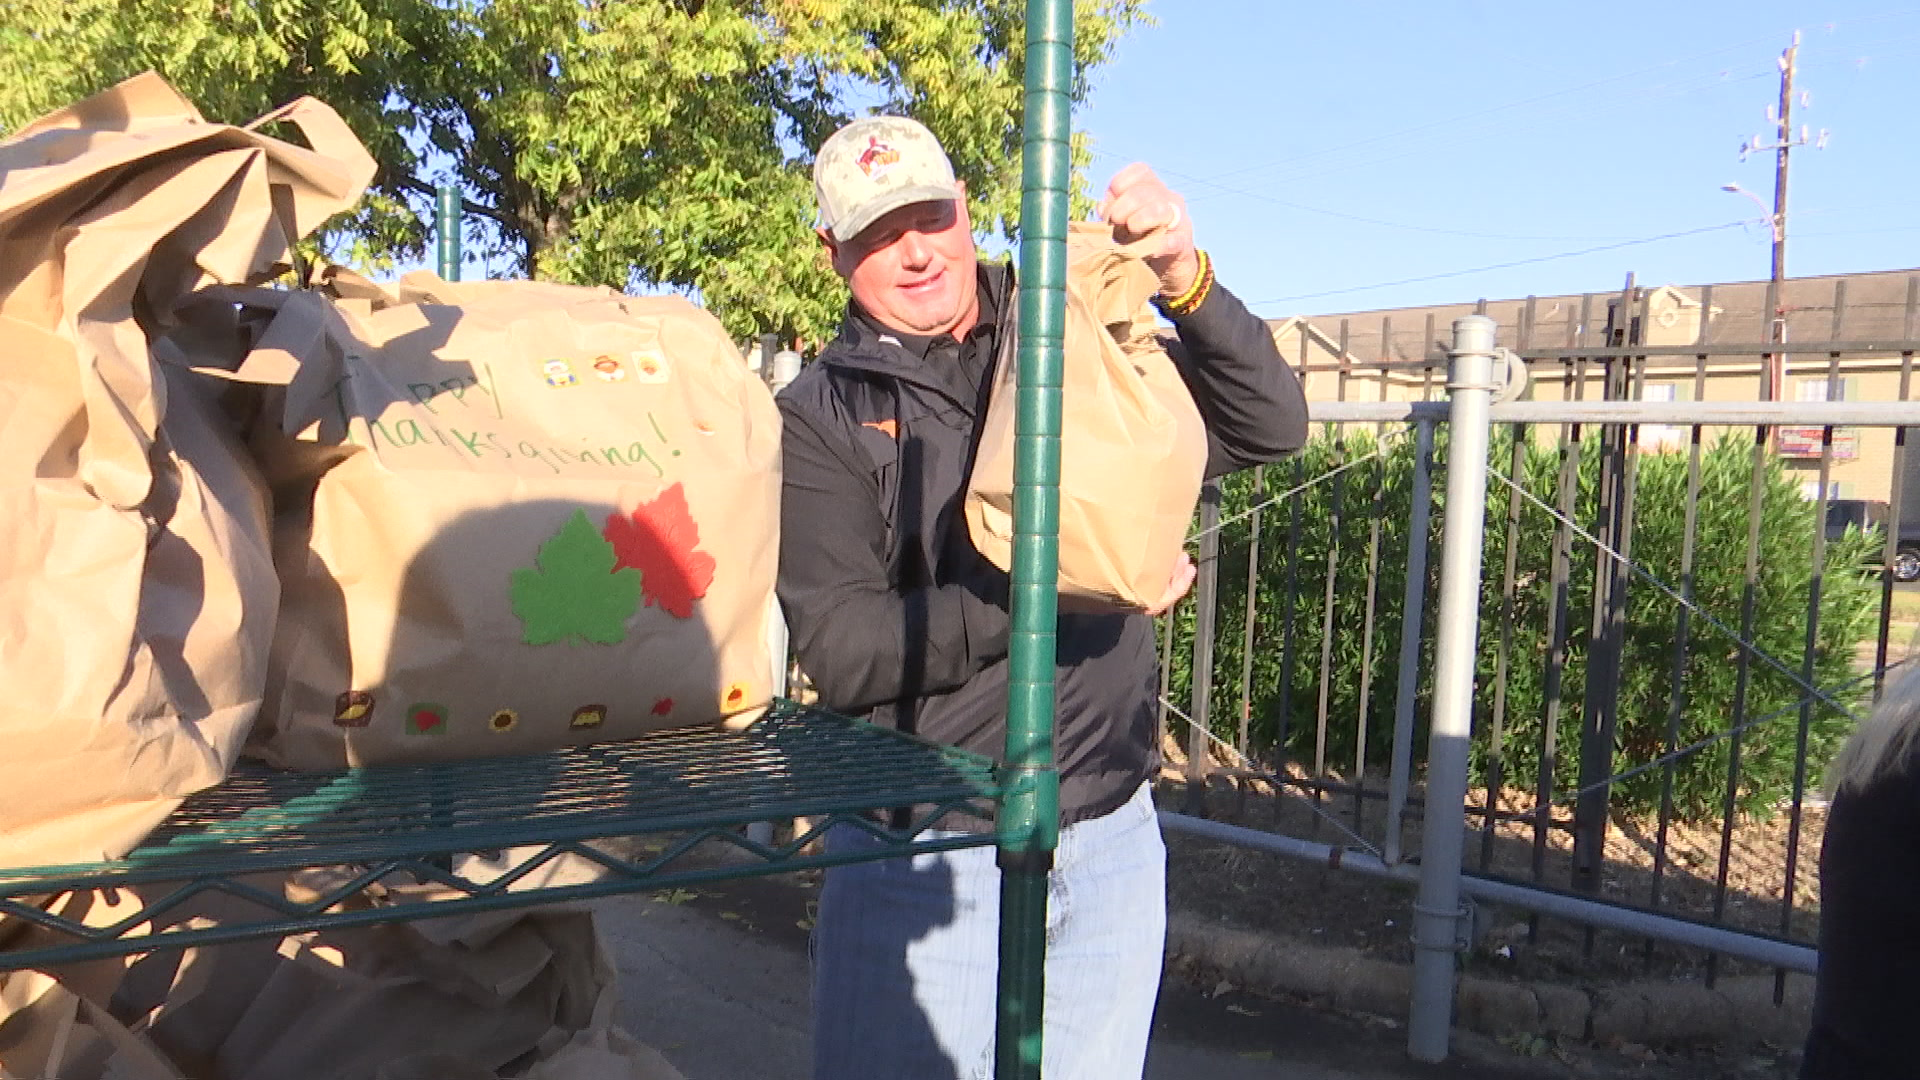 Roger Clemens delivers turkeys 1,600 meals to families in need